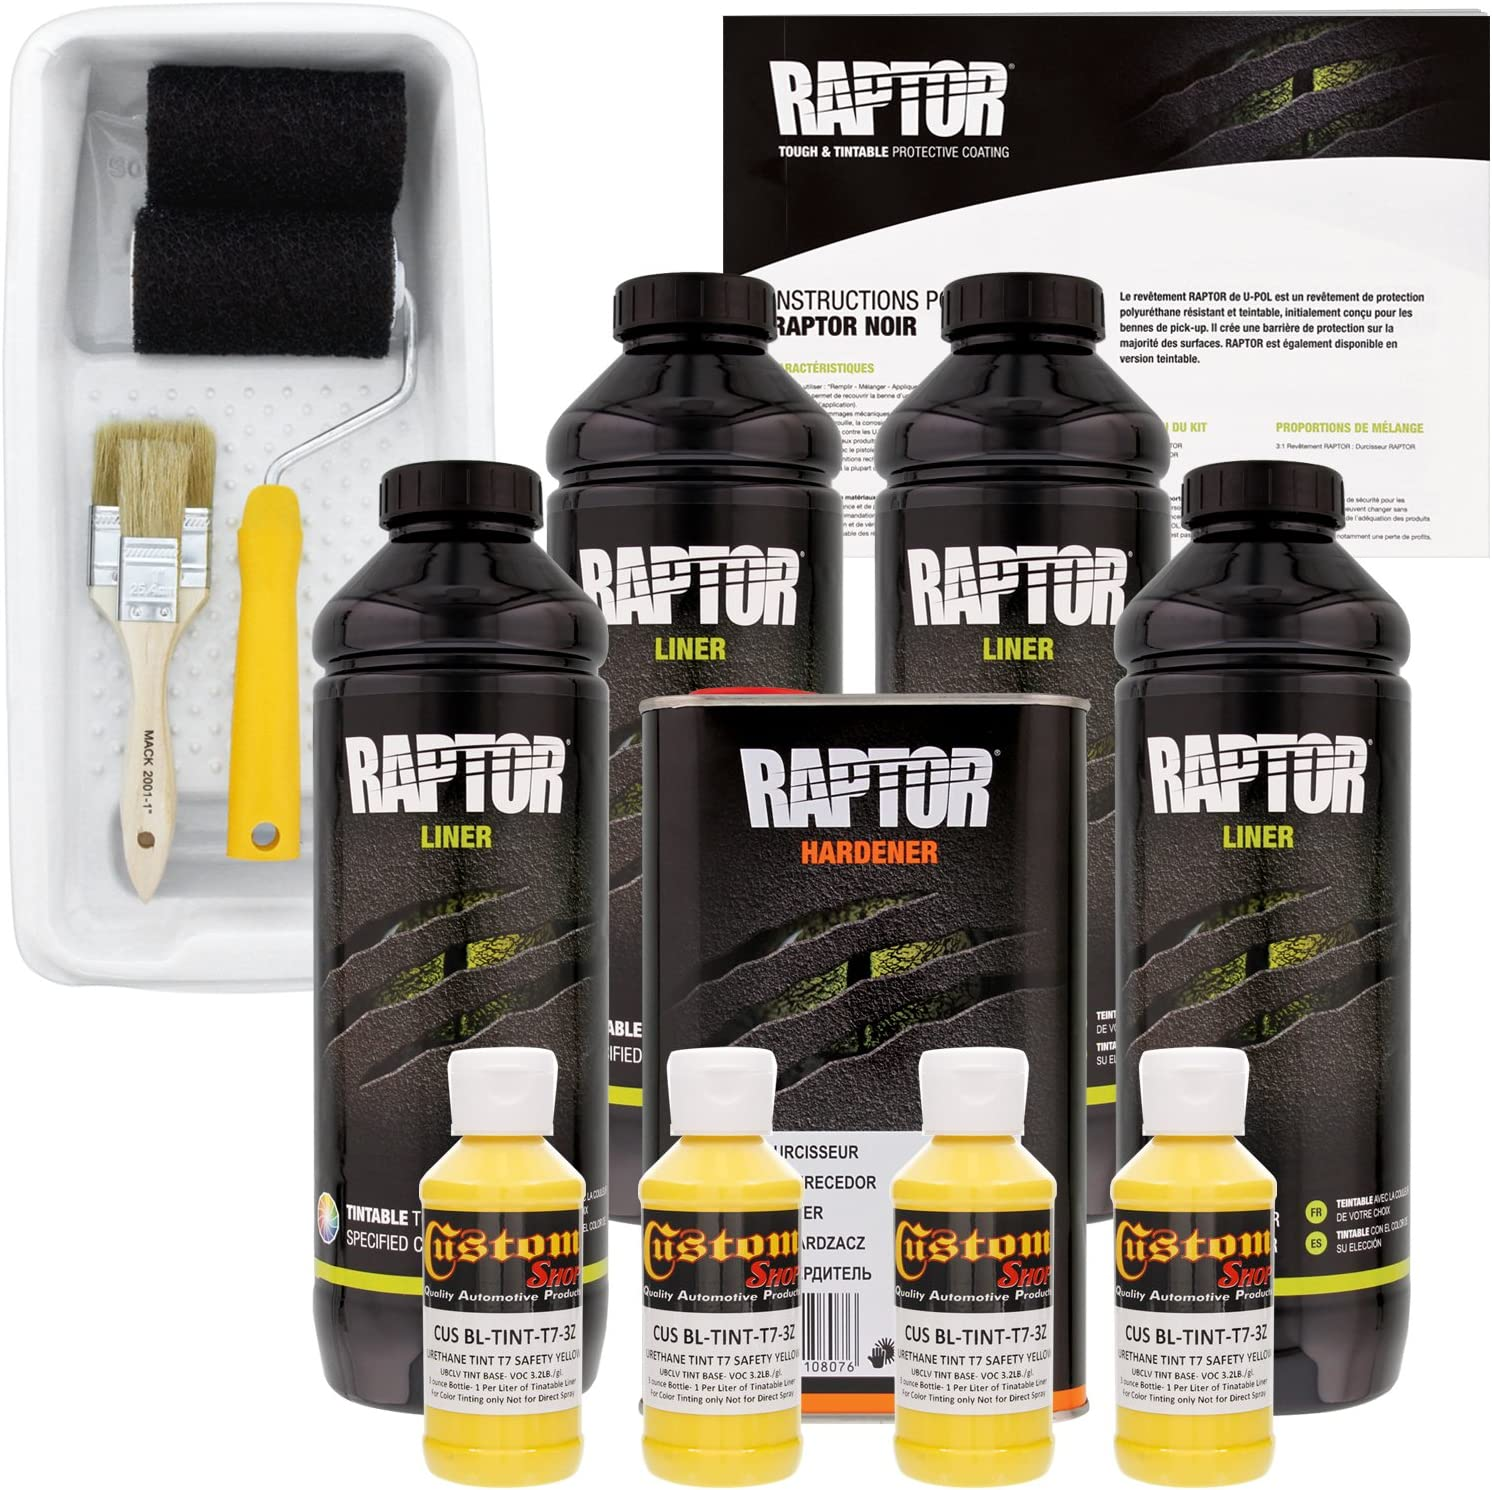 U-POL Raptor Safety Yellow Urethane Liner Bed Truck Kit Special Opening large release sale price for a limited time Spray-On